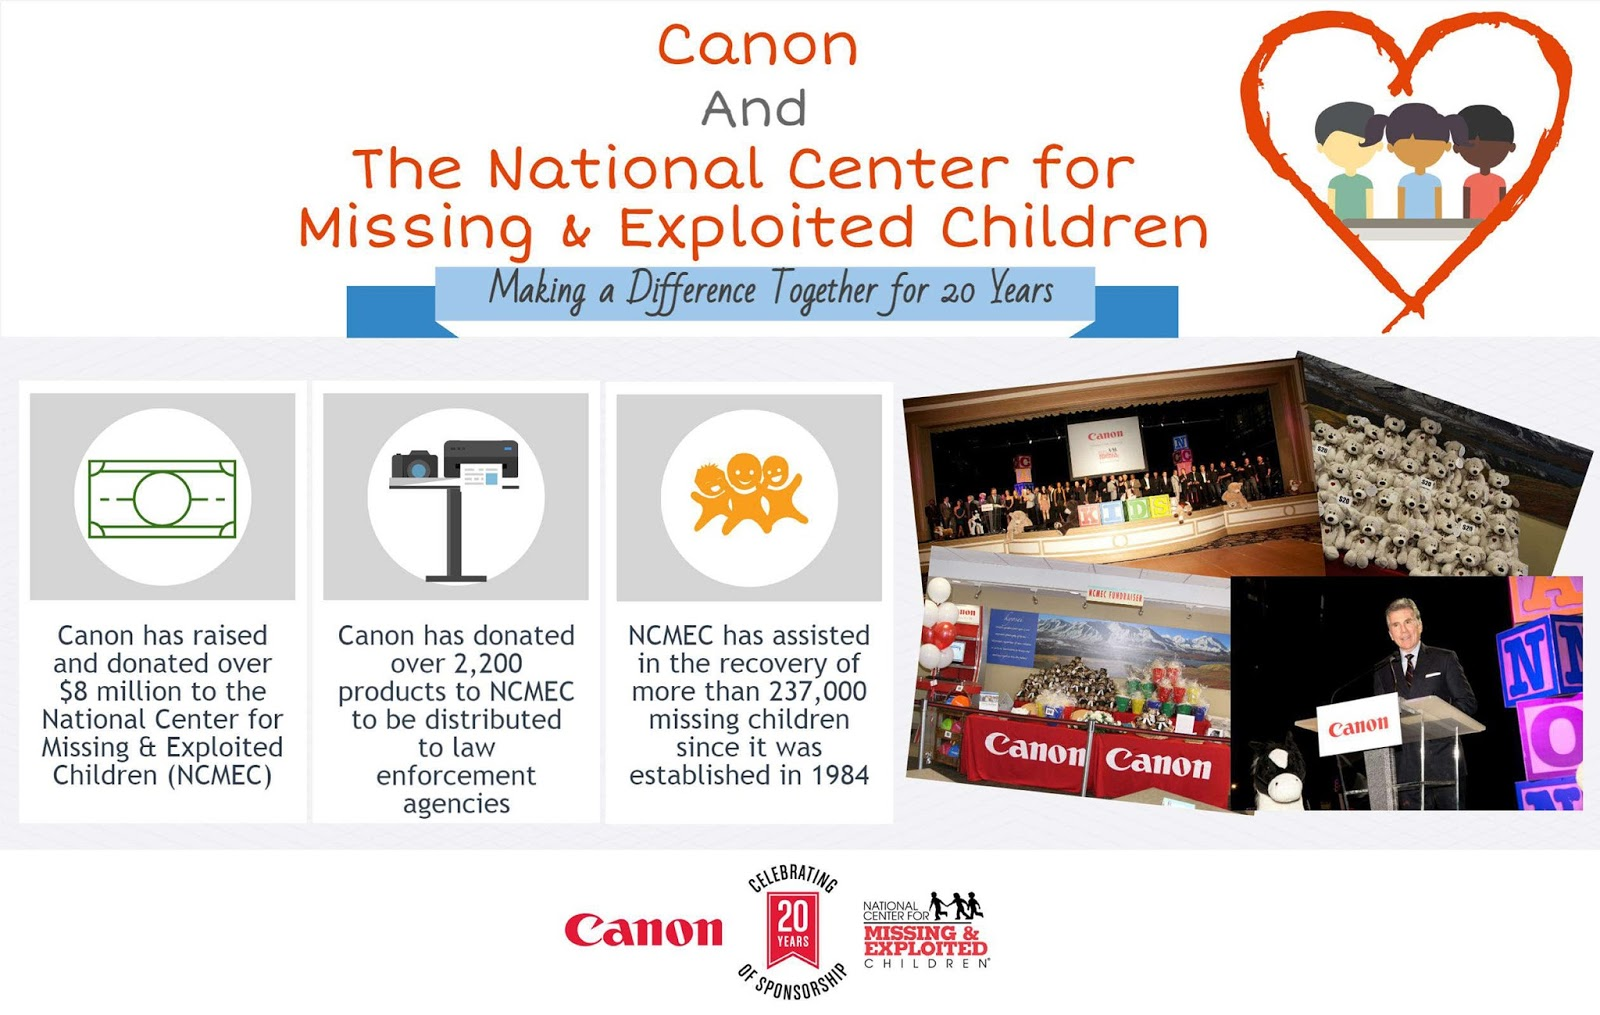 national centre for missing and exploited essay How many missing and exploited children are there in the united states national center for missing & exploited children (ncmec) http://www justice events missing children seminar for chief executive officers june 5, 2018 alexandria, virginia domestic child sex trafficking and children.